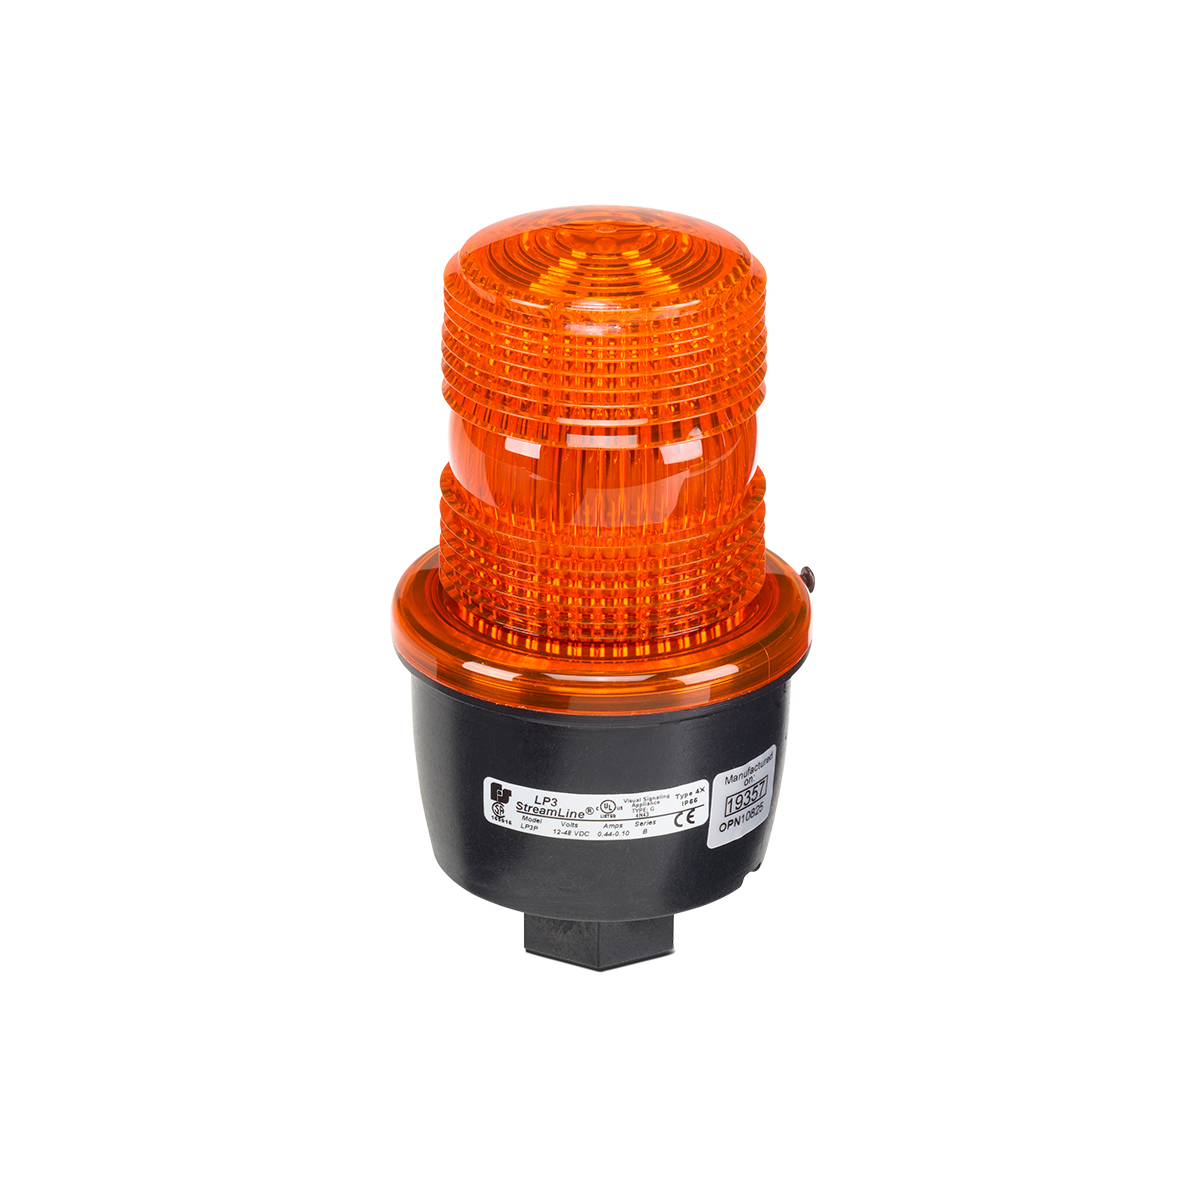 LP3P-120A - Federal Signal Strobe, 120VAC, Amber, Pipe Mount